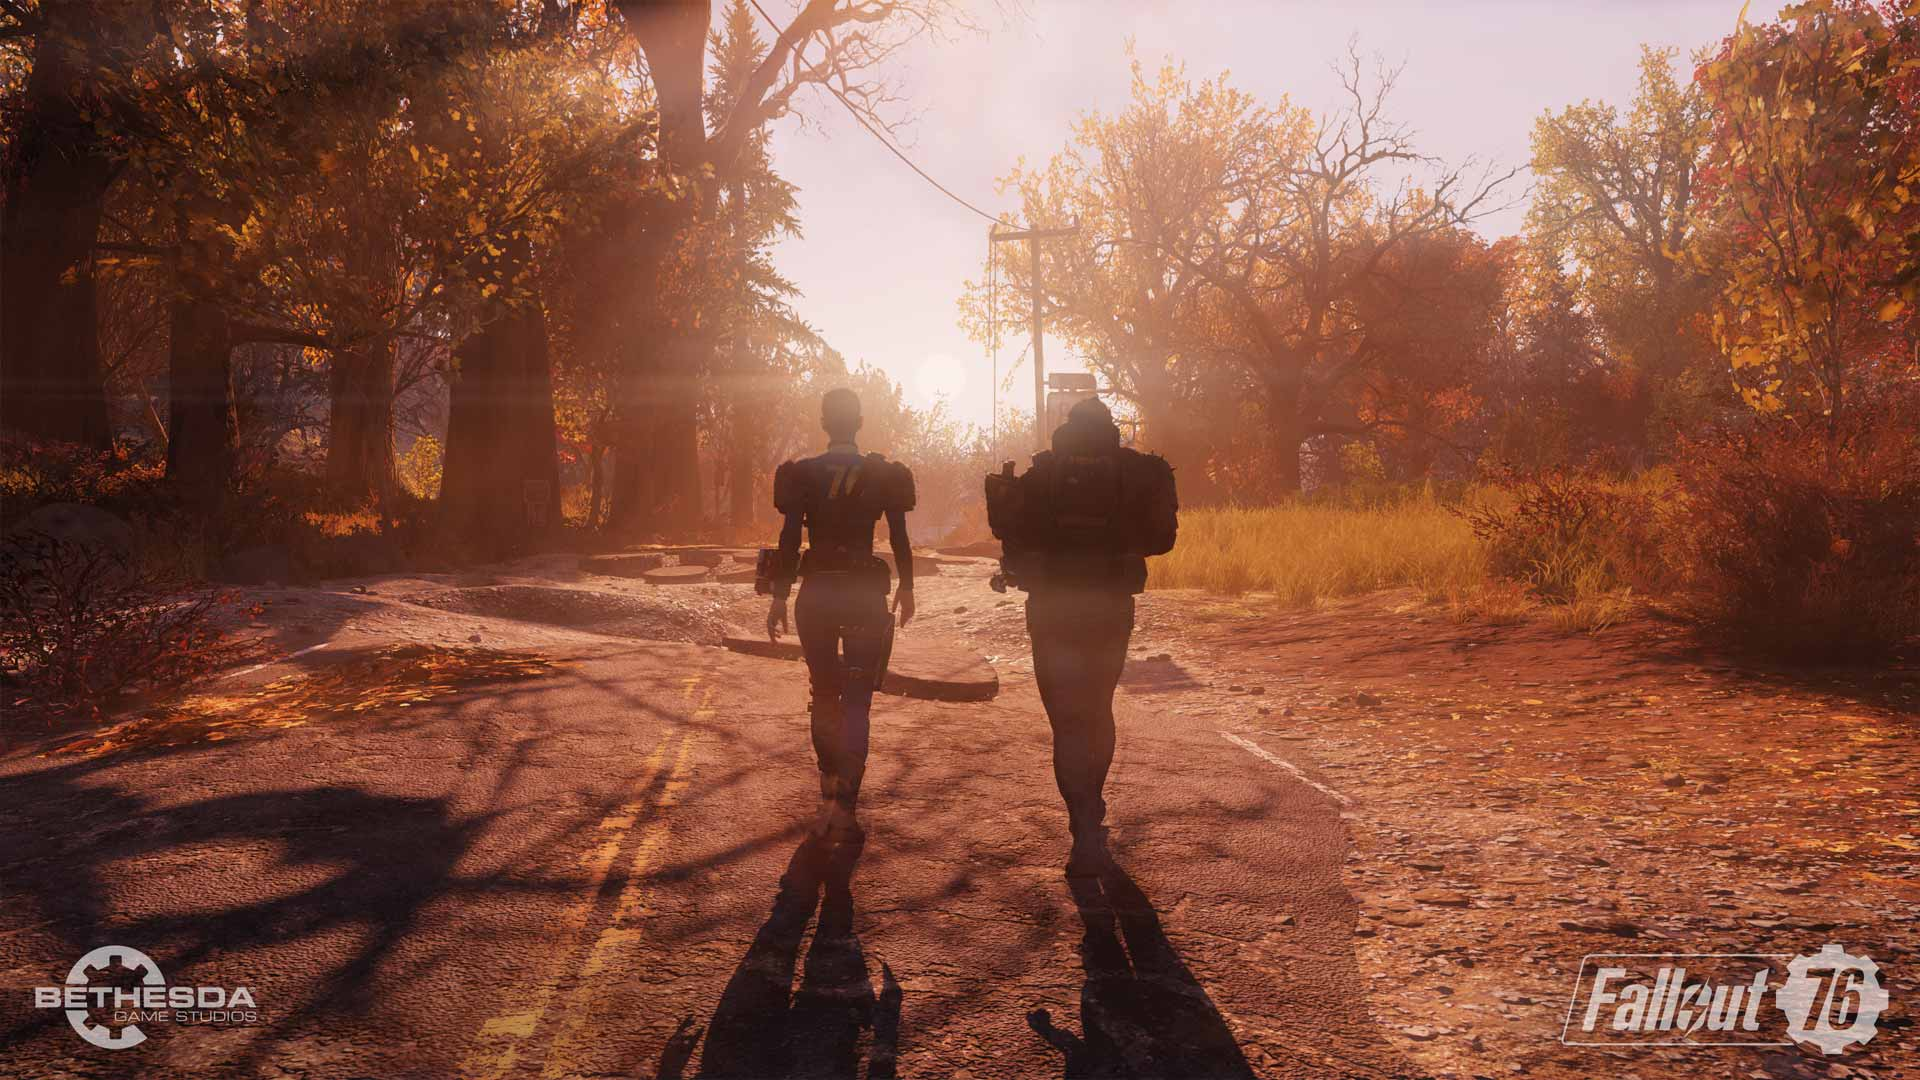 Fallout 76 Battle Screenshot